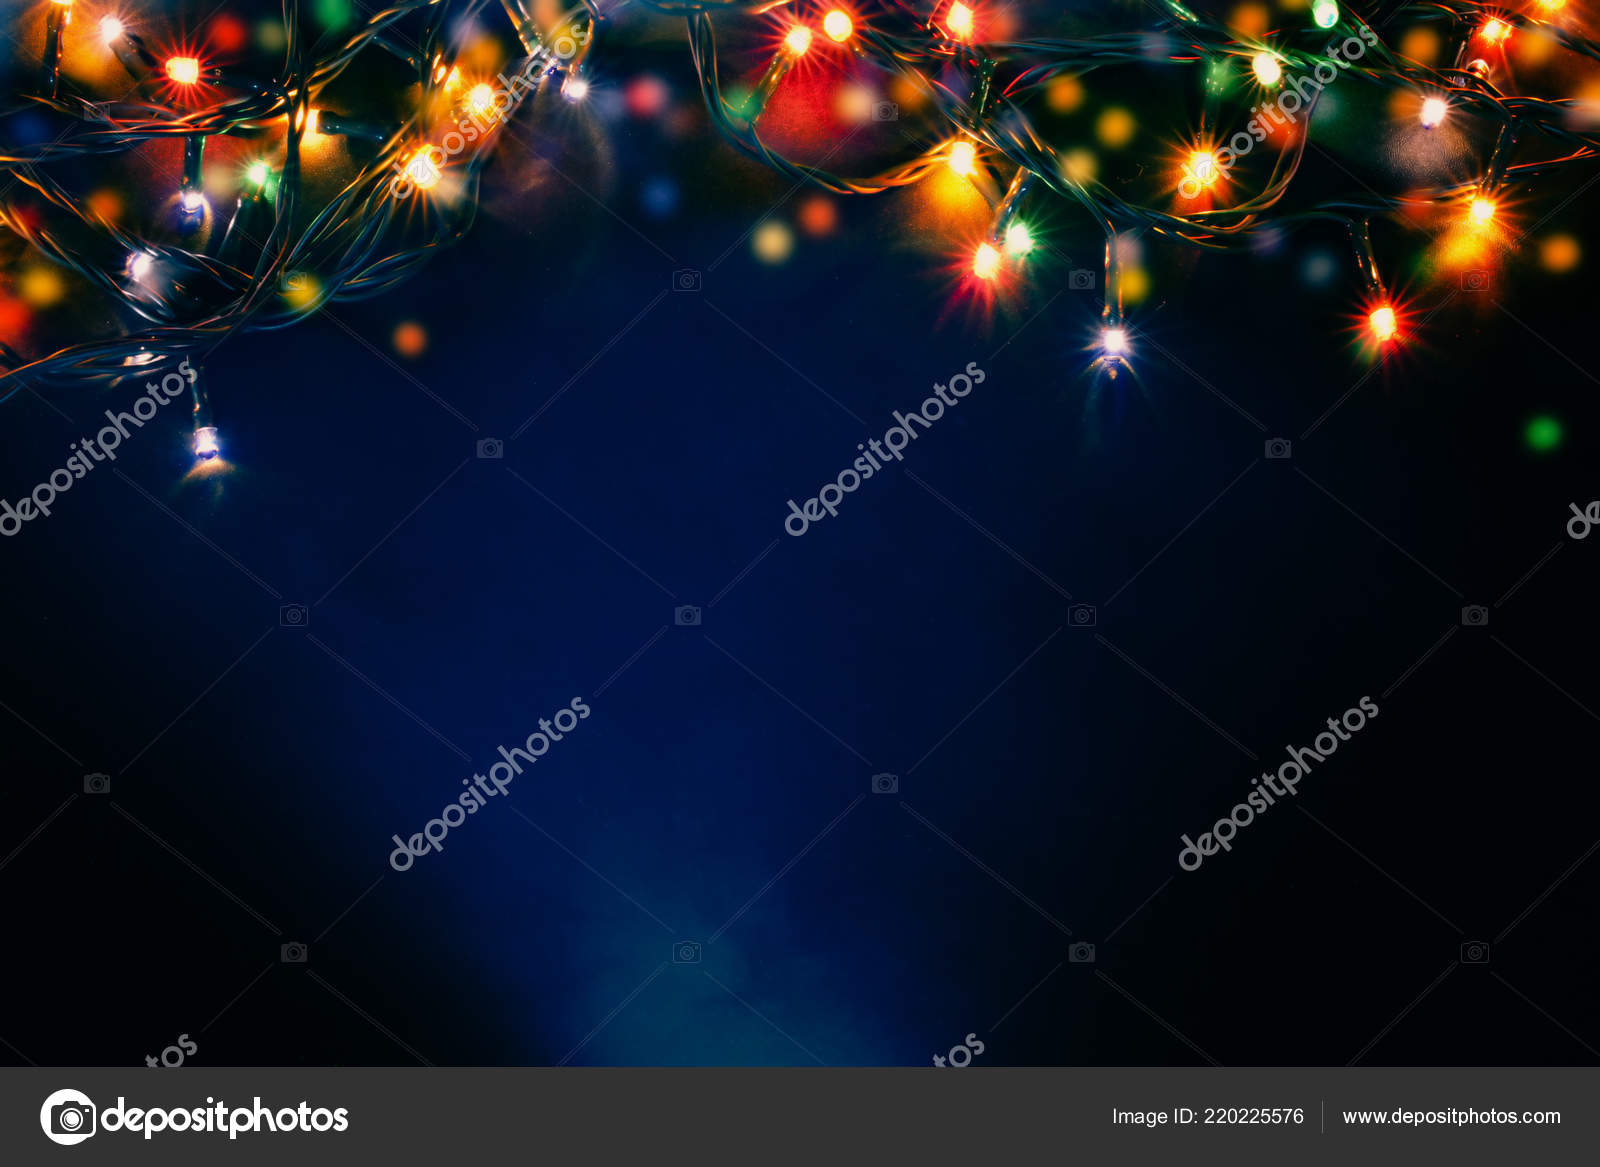 Colorful Christmas Lights Background.Colorful Christmas Lights Abstract Background Stock Photo